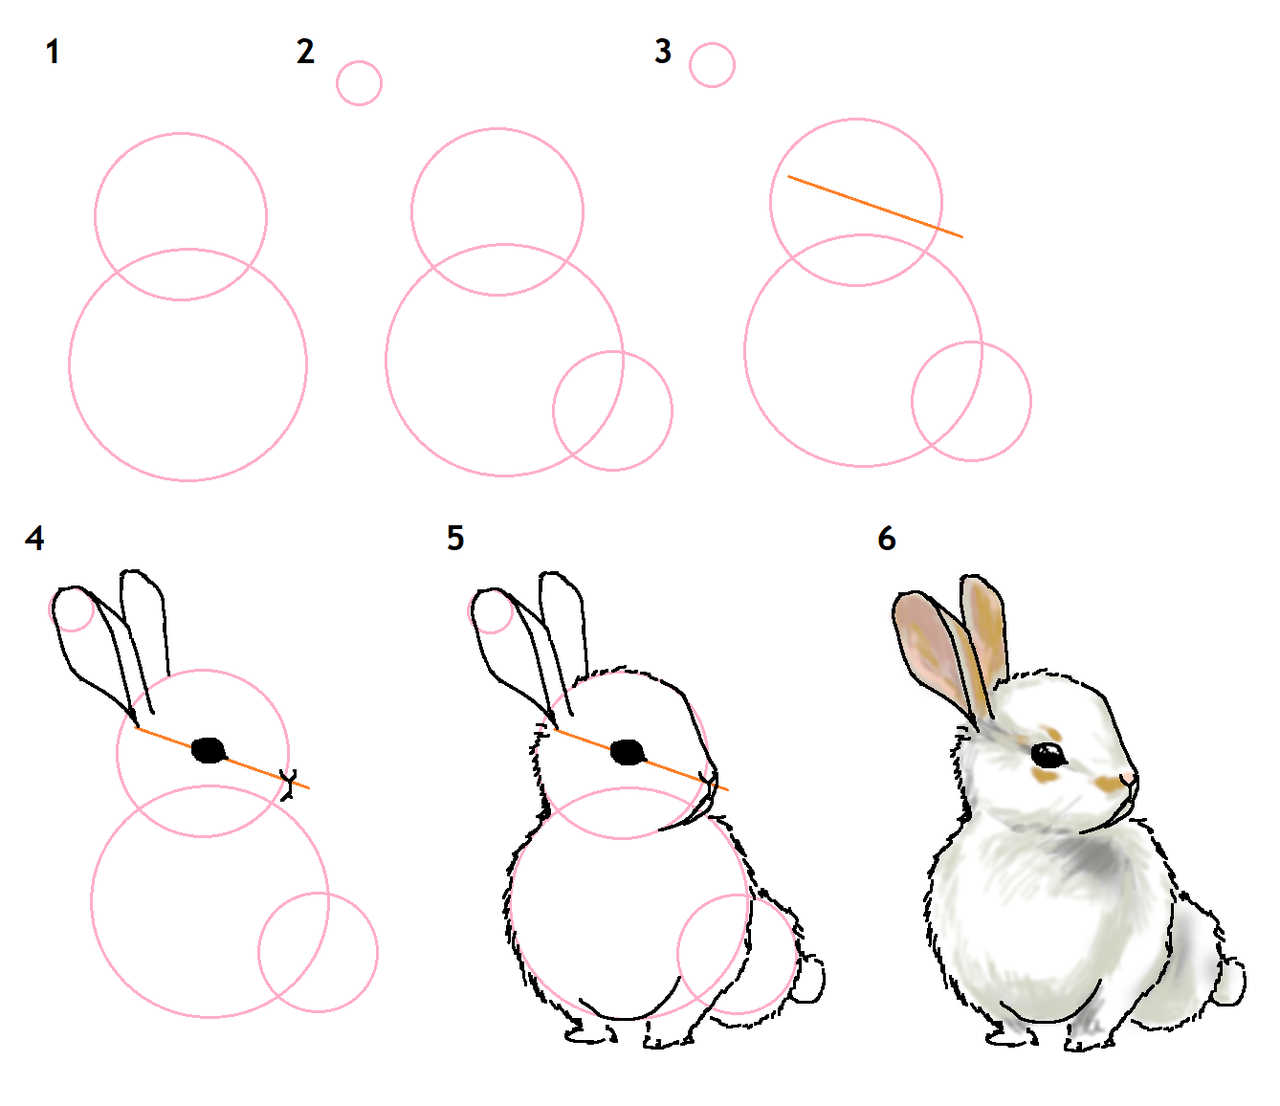 Base De Dessin On Dessine Un Lapin Site De Wild Little Mango Rabbit Easy Drawing For Beginners Tutoriel Pour Debutant En 2020 Dessin Lapin Dessin Dessin Debutant